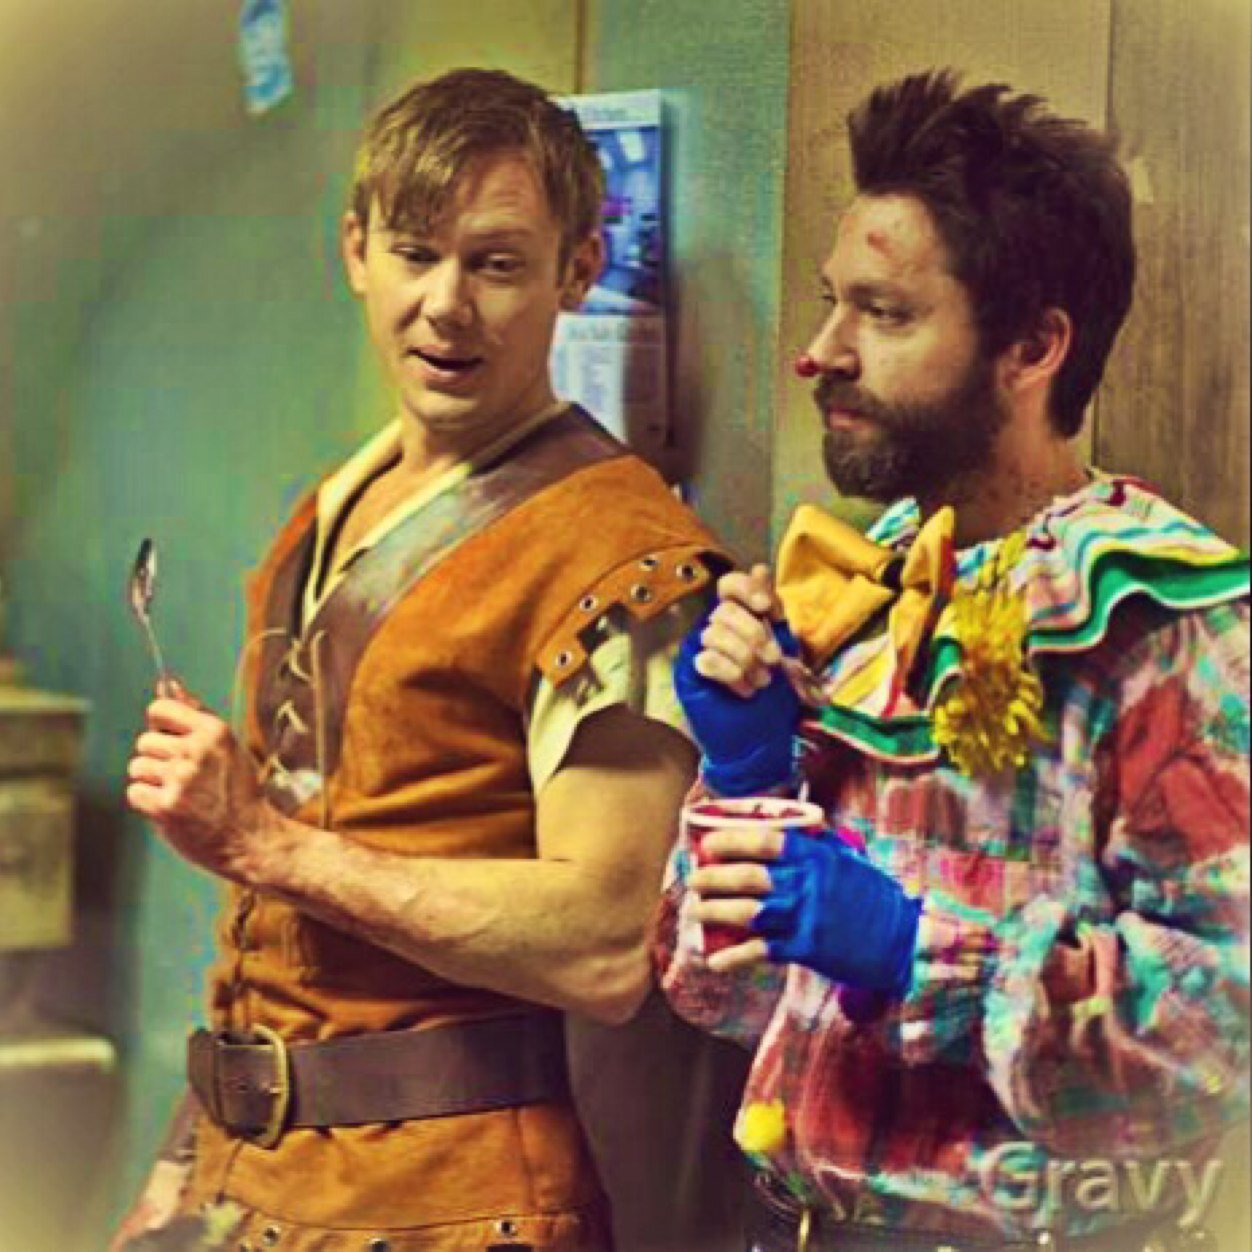 Michael Weston and Jimmi Simpson in Gravy